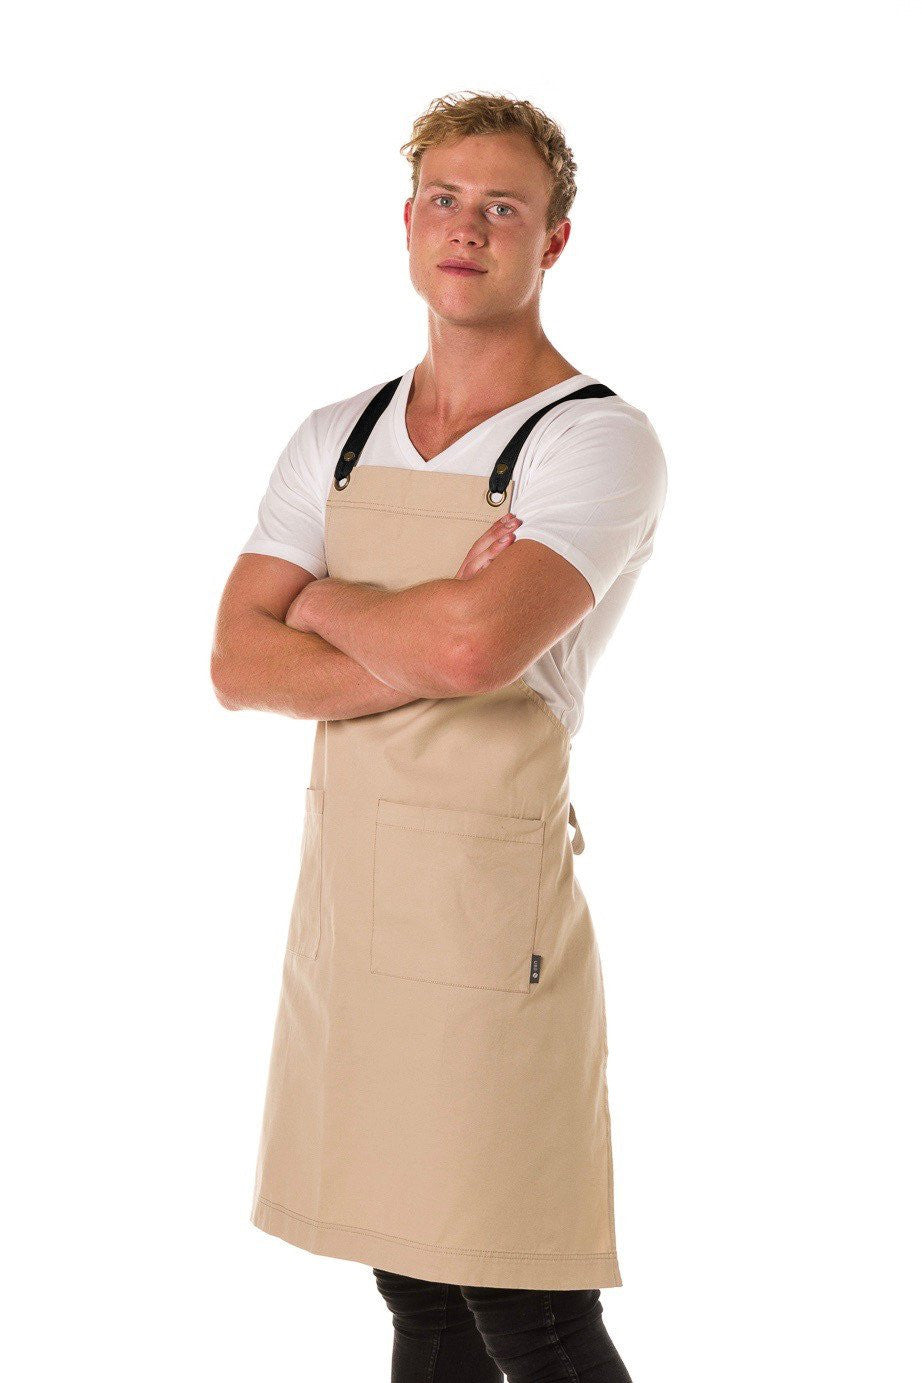 ARCHIE Apron with textured tape straps and 2 pkts - STONE